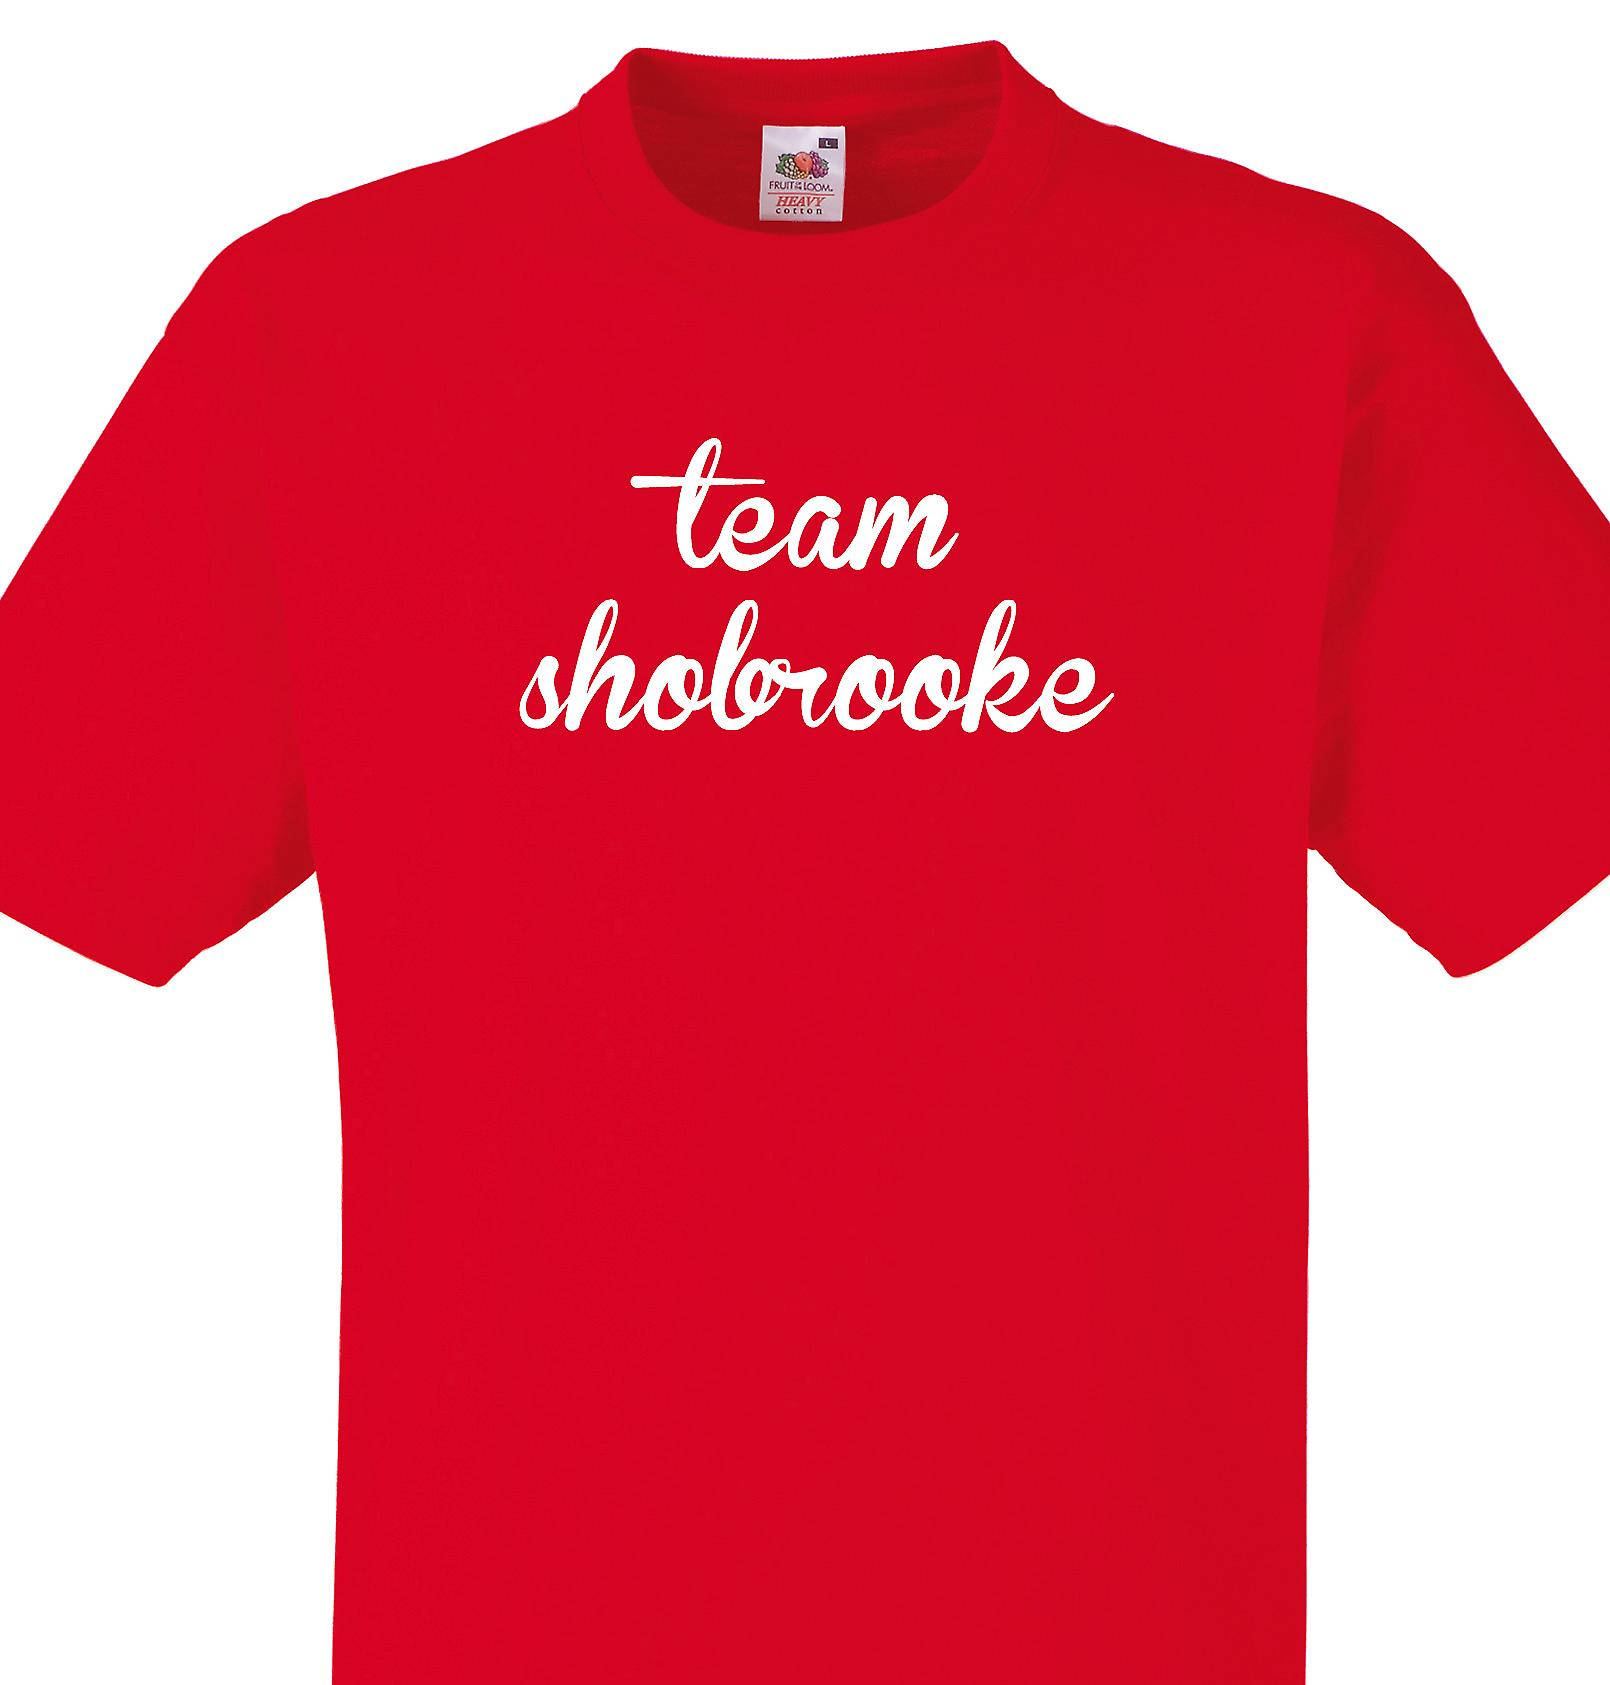 Team Shobrooke Red T shirt